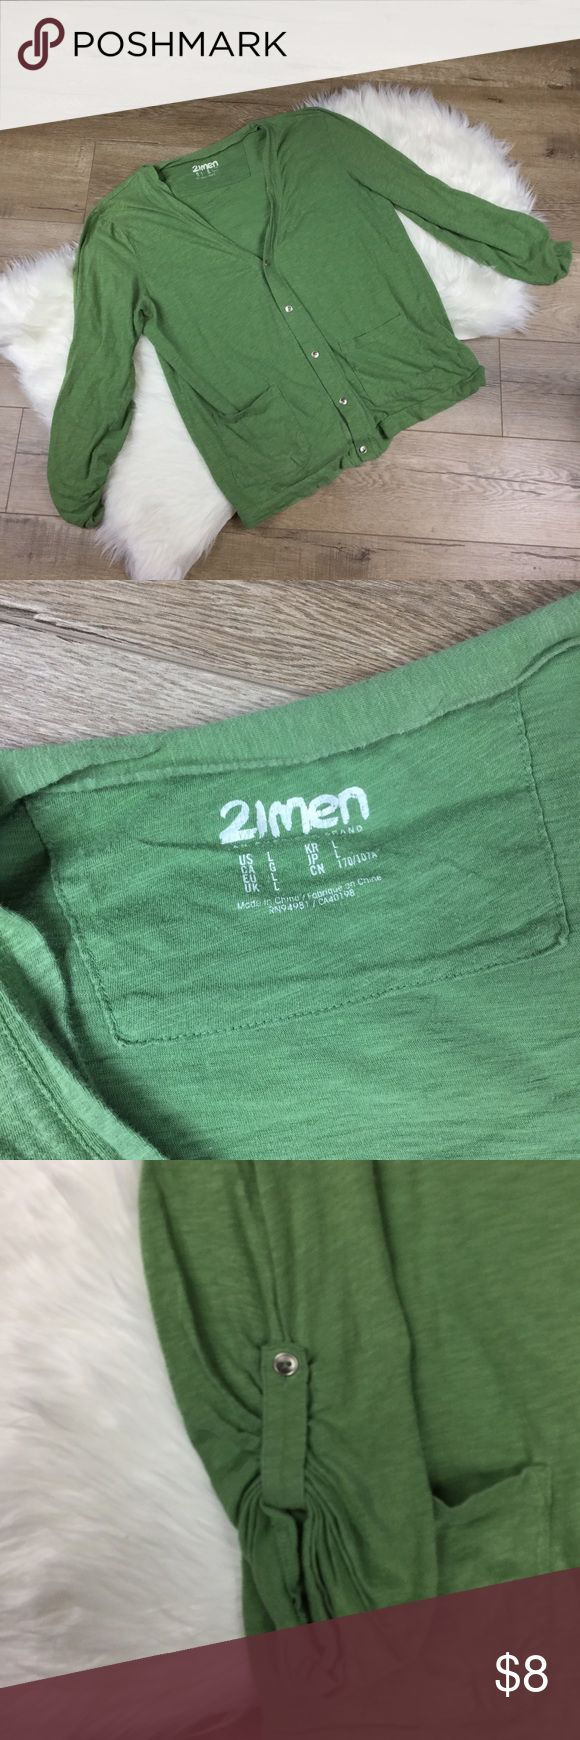 21 men green sweater Good cardigan sweater from forever 21men green.  Arms are adjustable. 21men Sweaters Cardigan